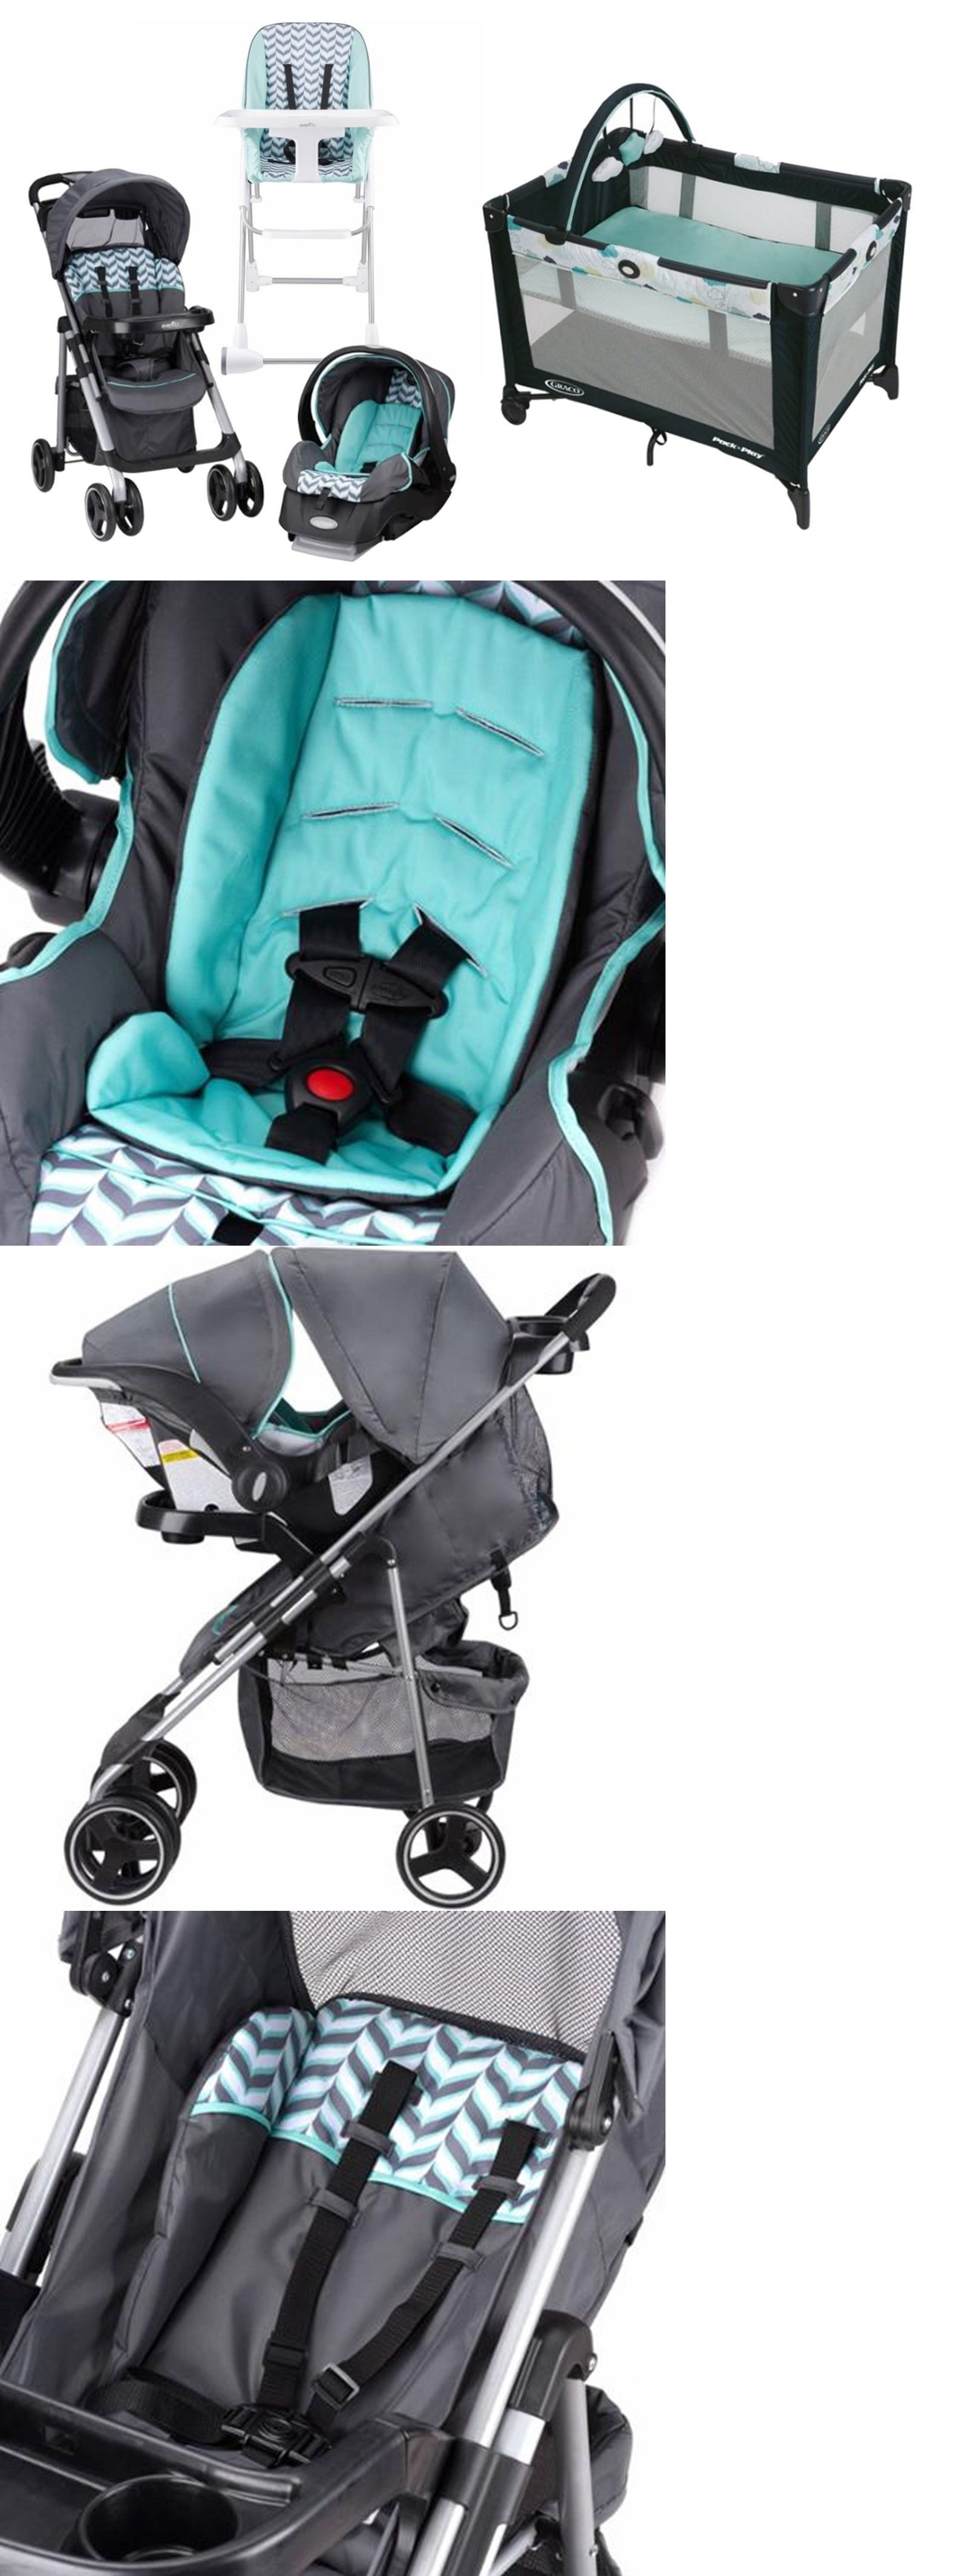 Strollers And Accessories 66698 Baby Stroller Car Seat Infant High Chair Playard Crib Travel System